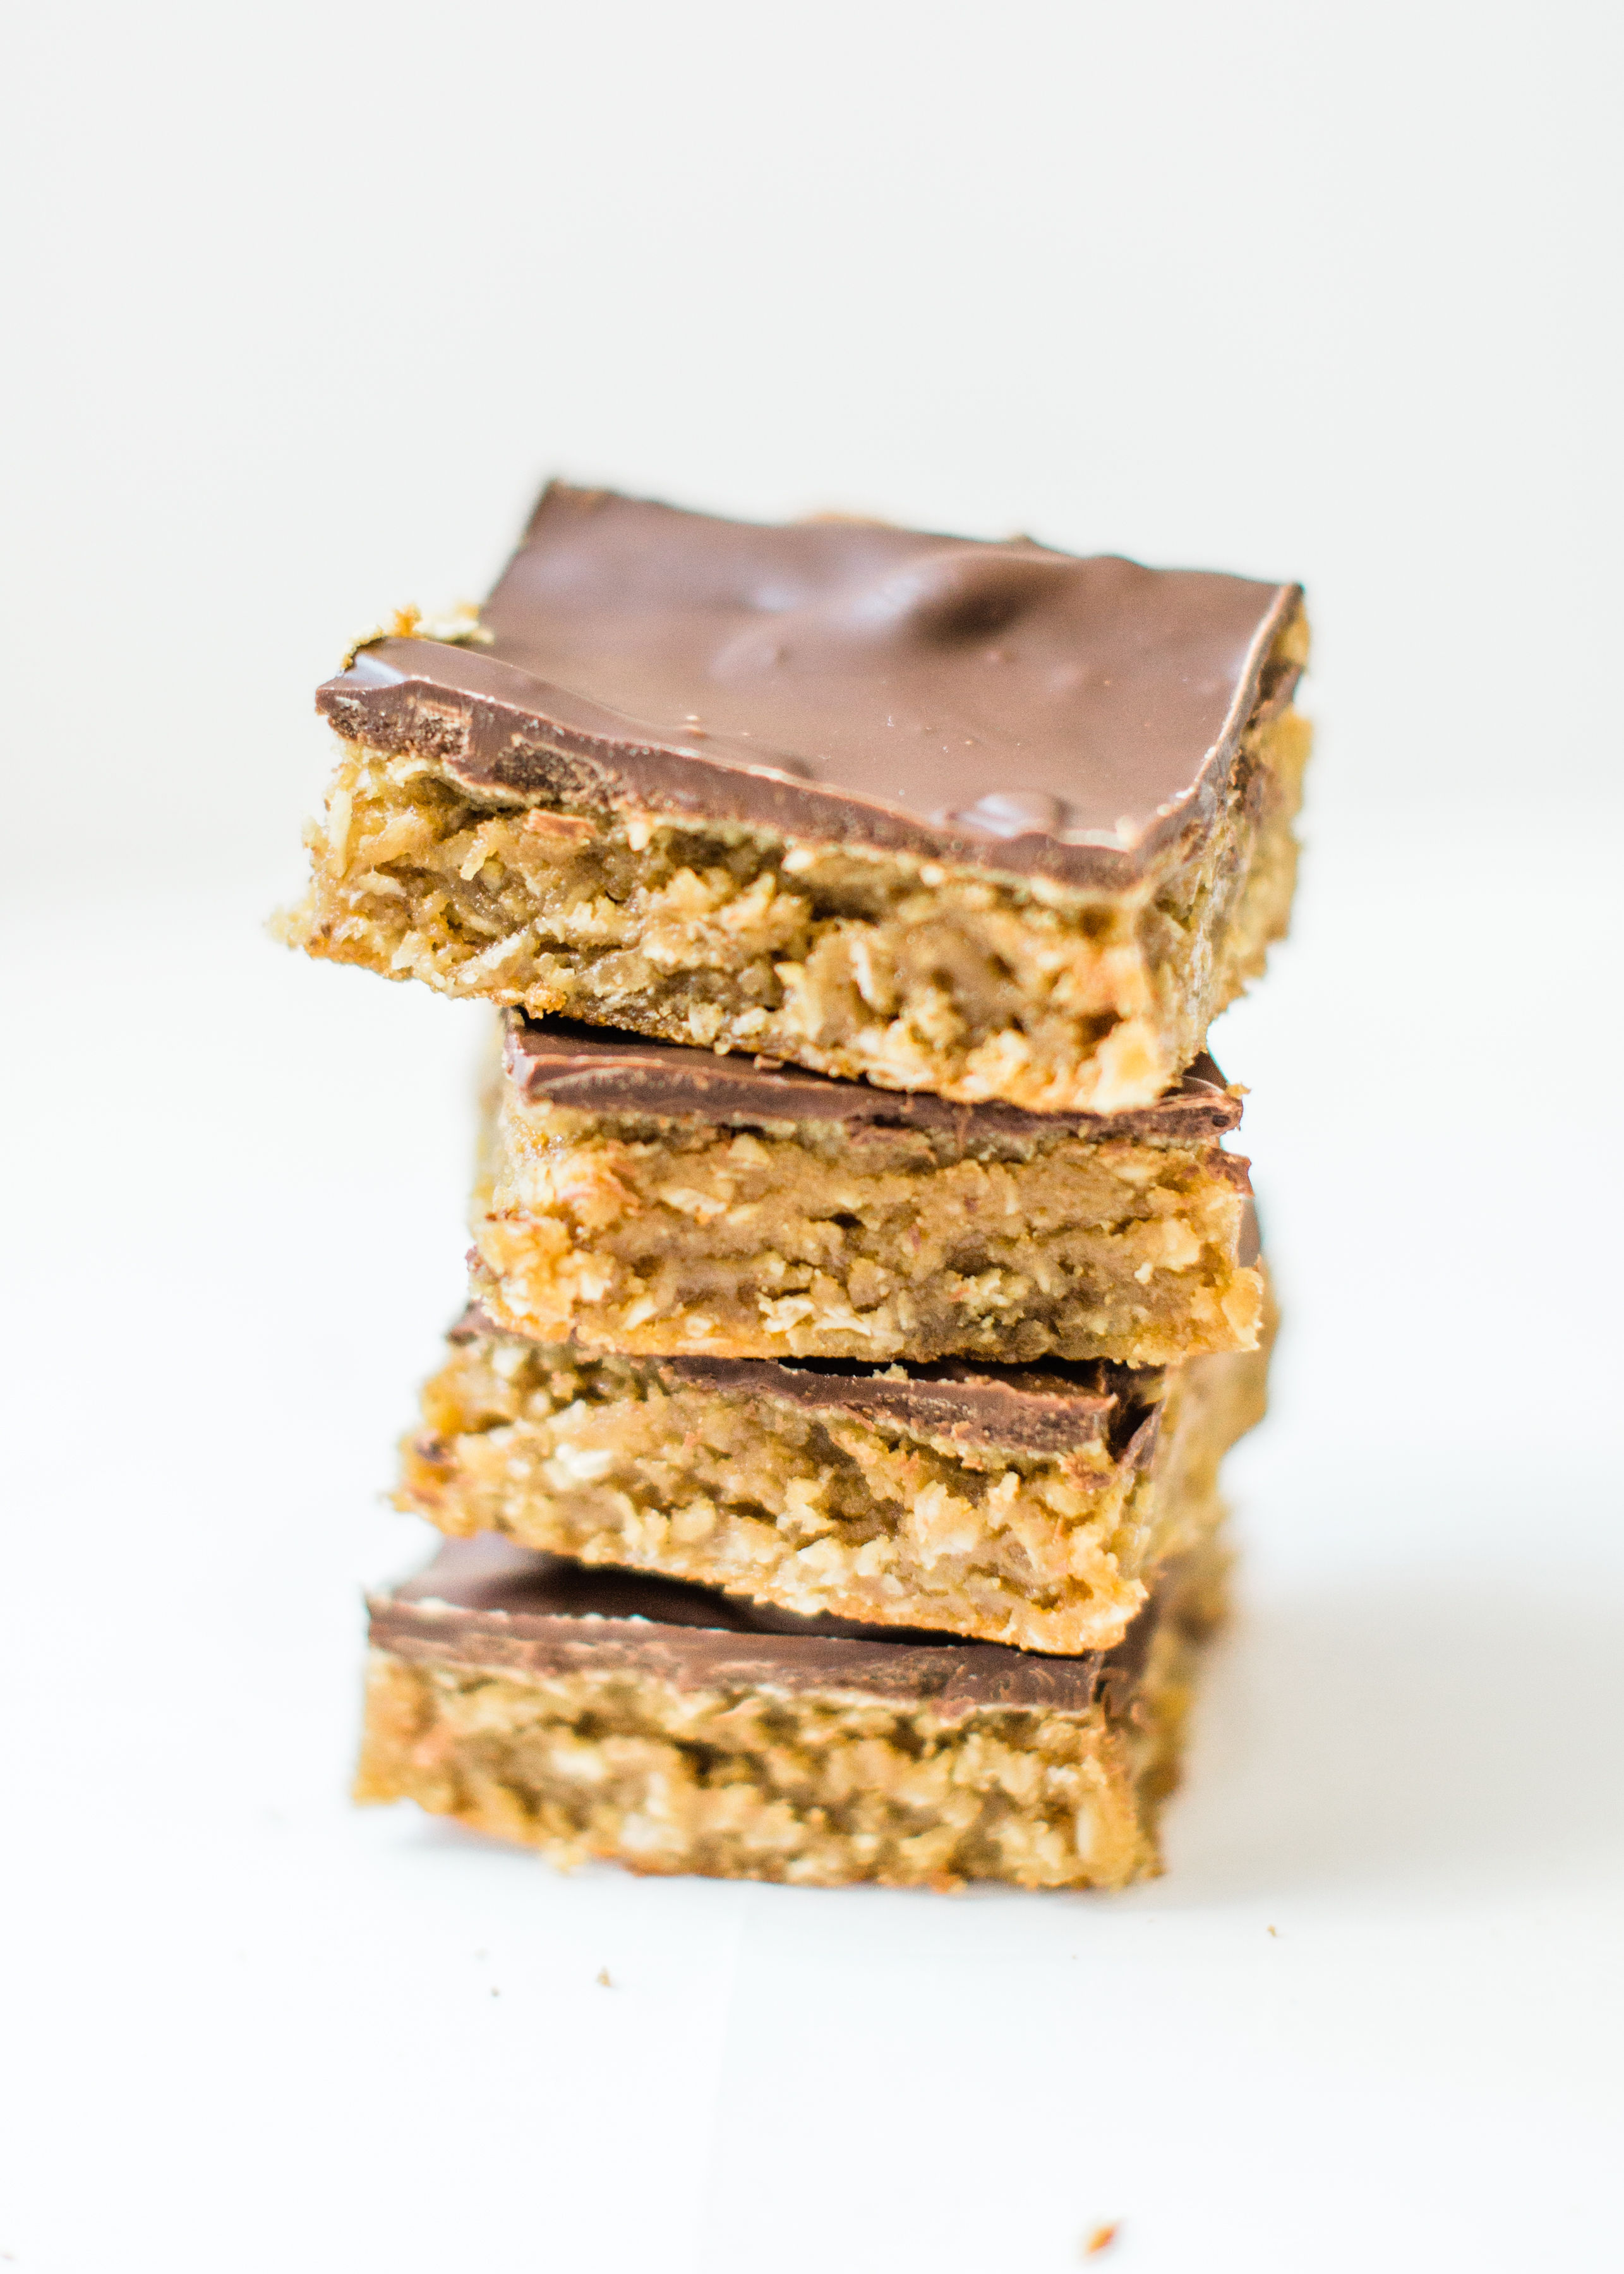 Sheet Pan Chocolate Peanut Butter Oatmeal Cookie Bars